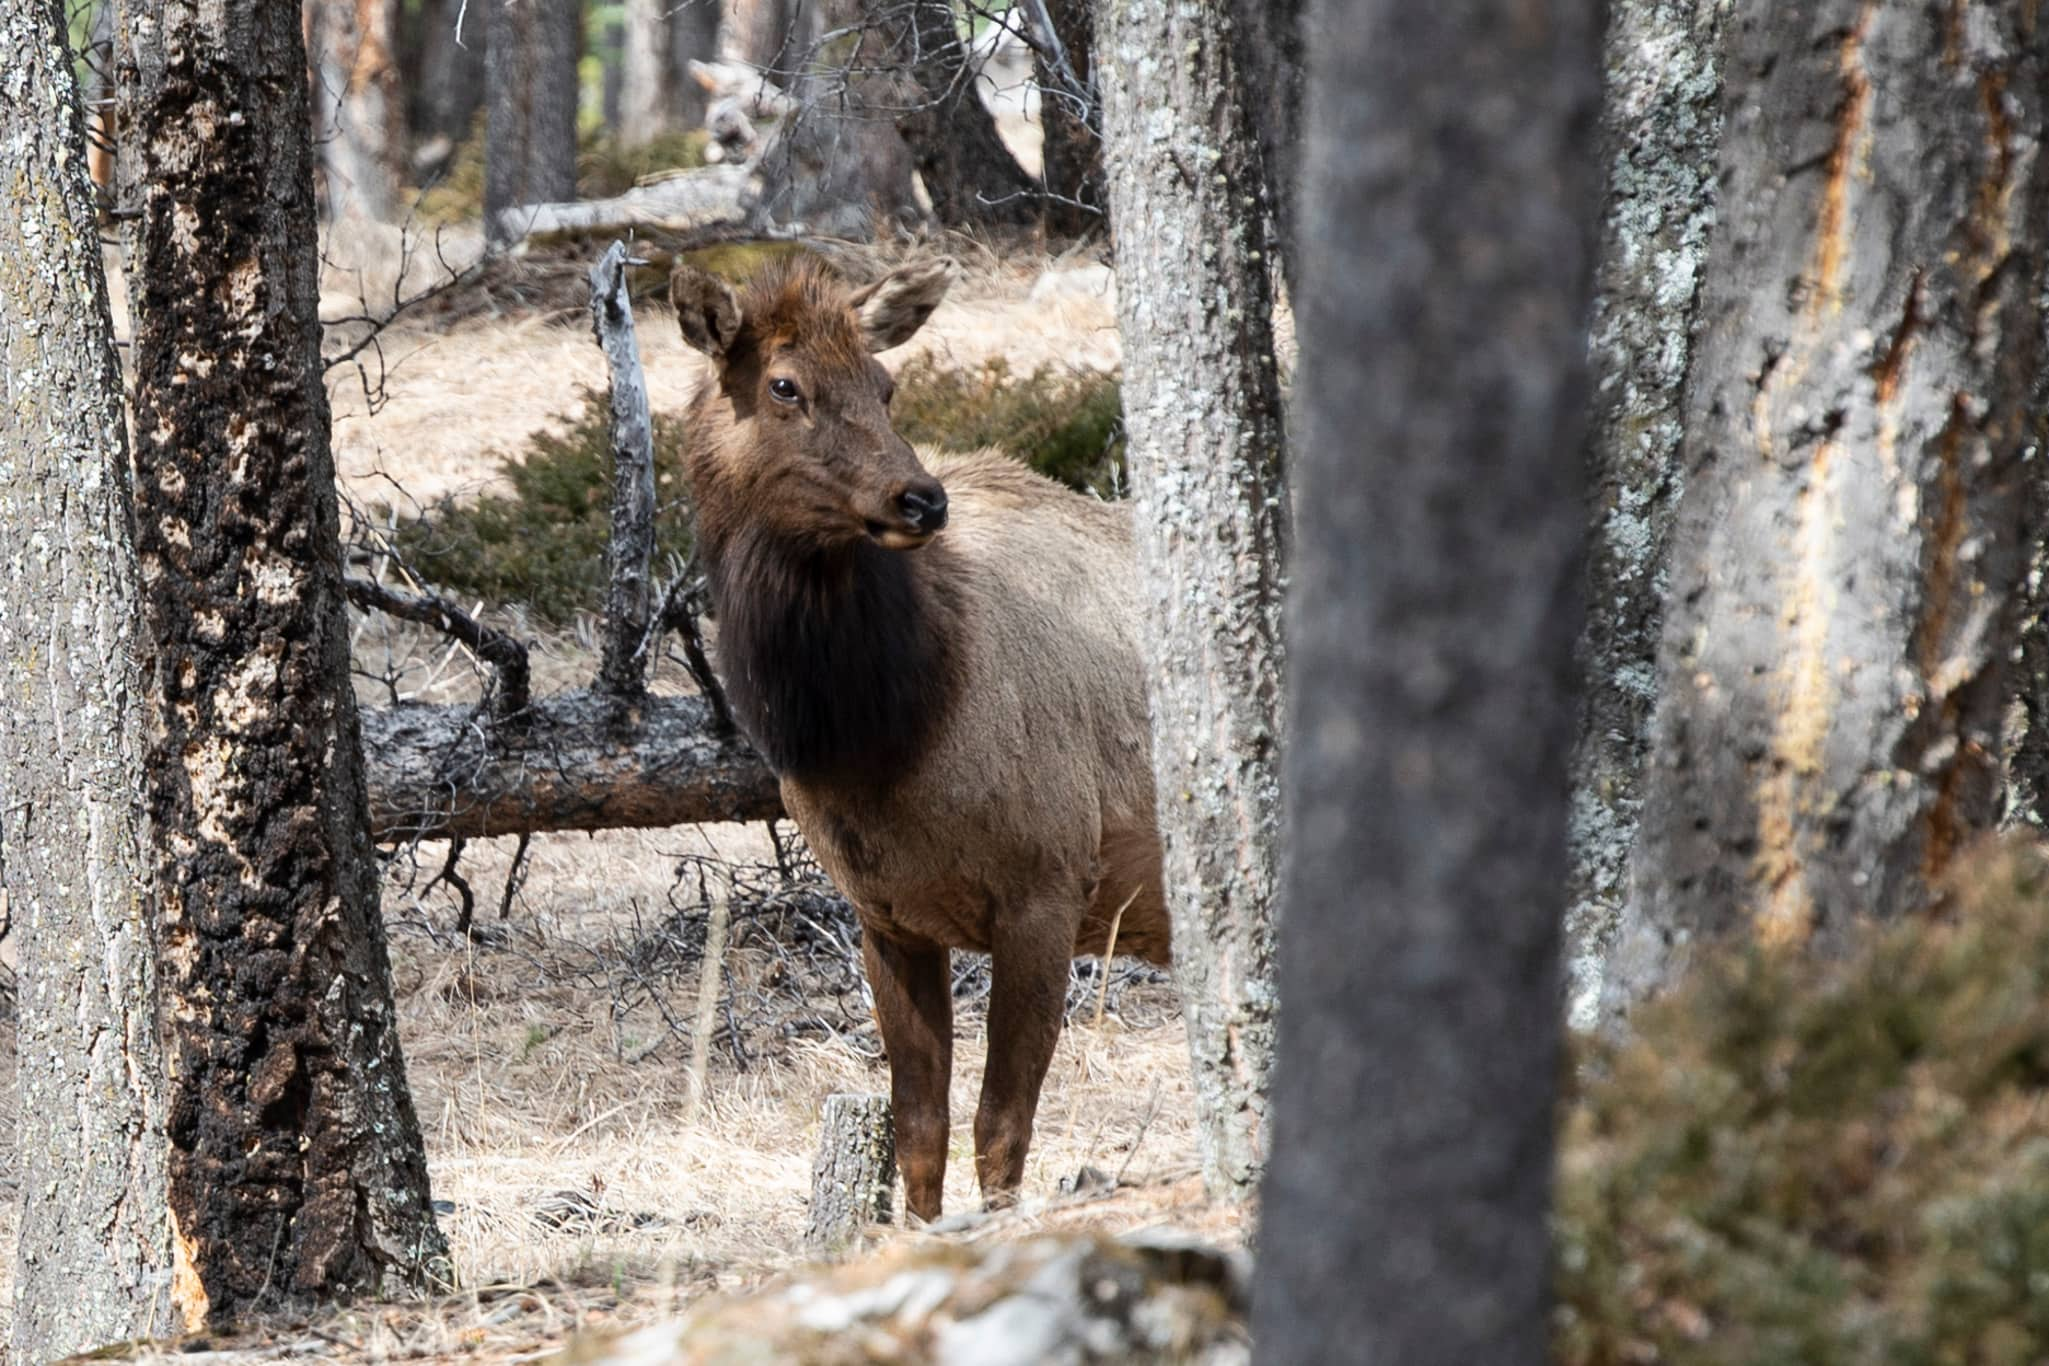 An elk poking his head from behind a tree.